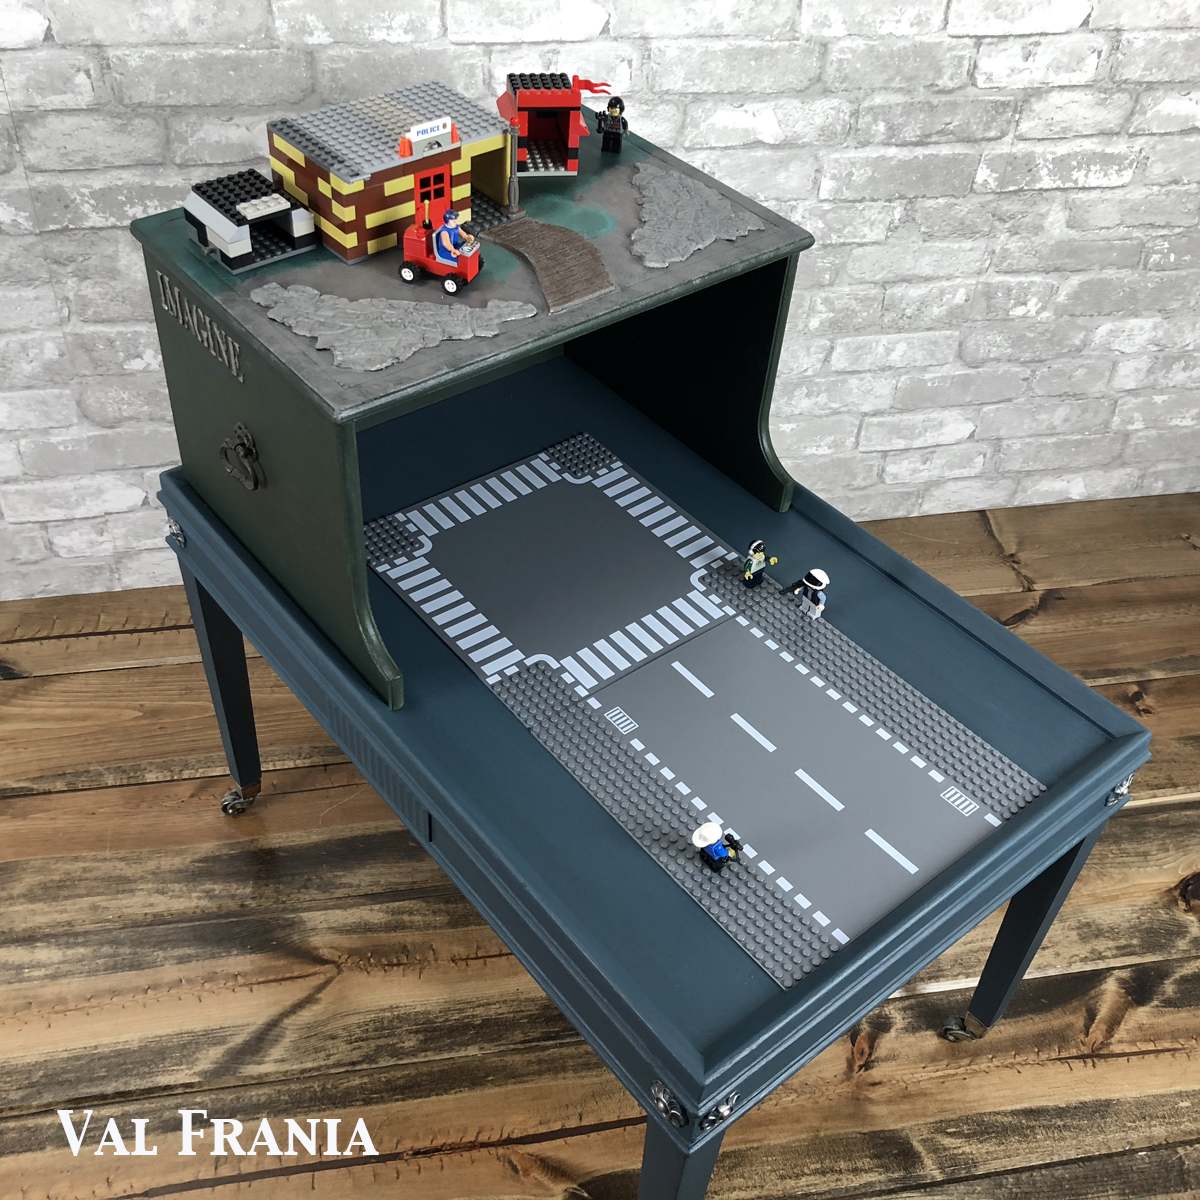 +Lego Table Full top view